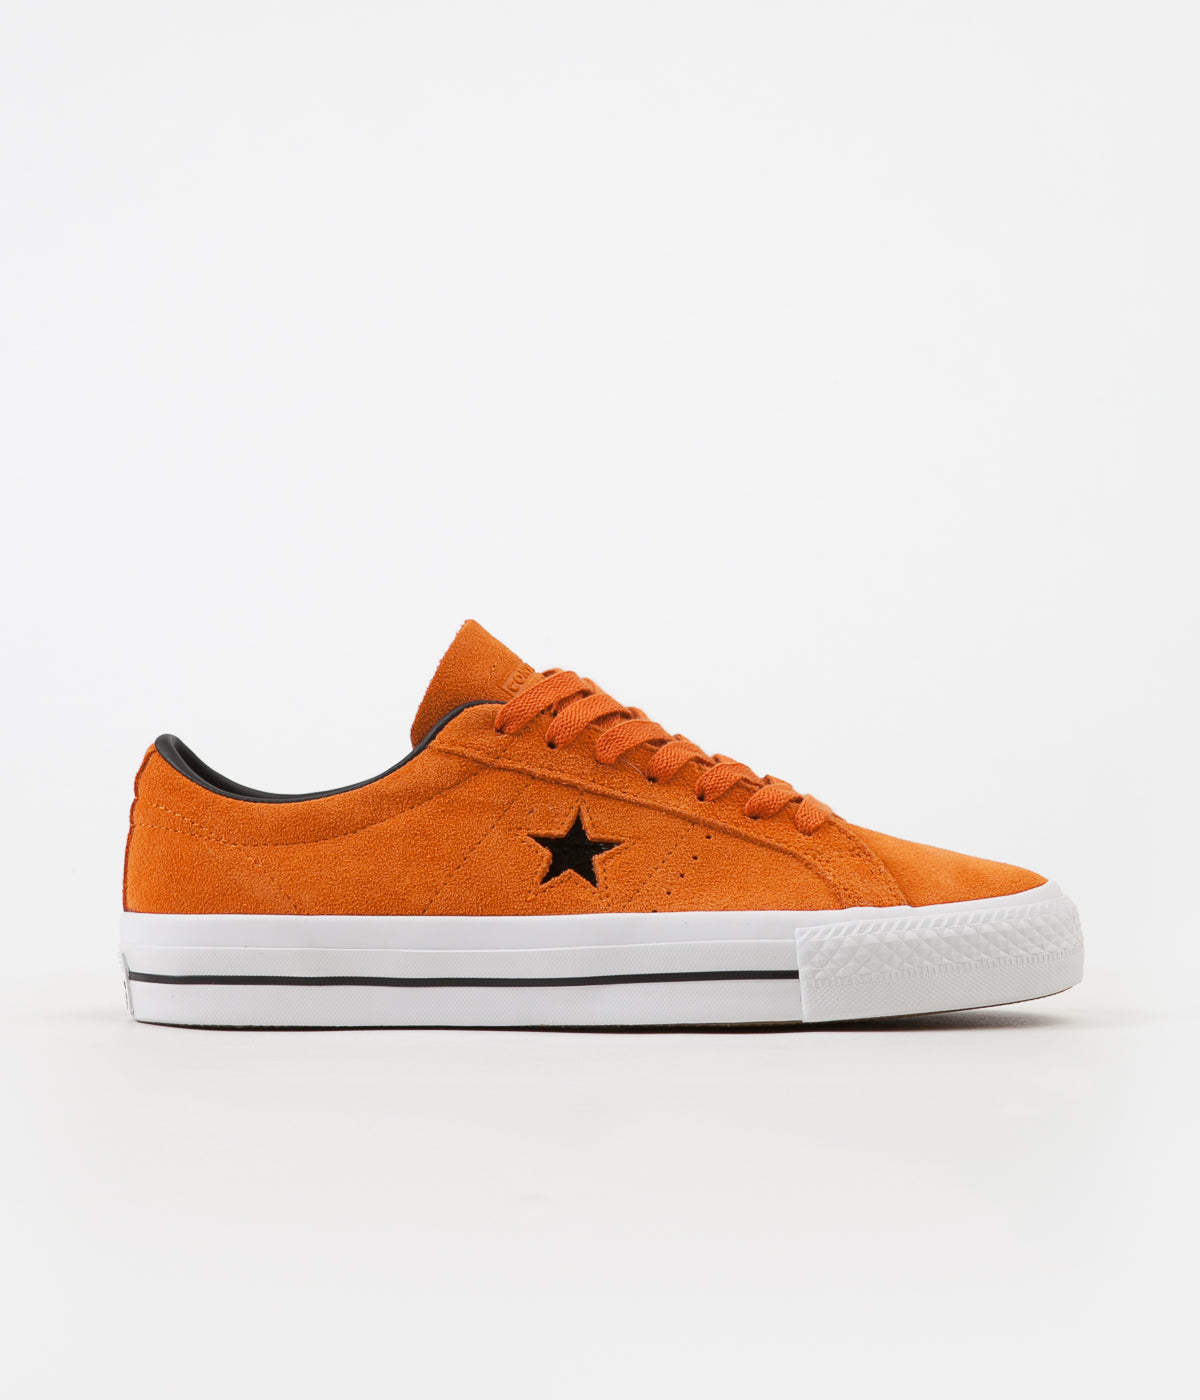 ... Converse One Star Pro Ox Shoes - Campfire Orange   Black   White ... 0c417ccb9